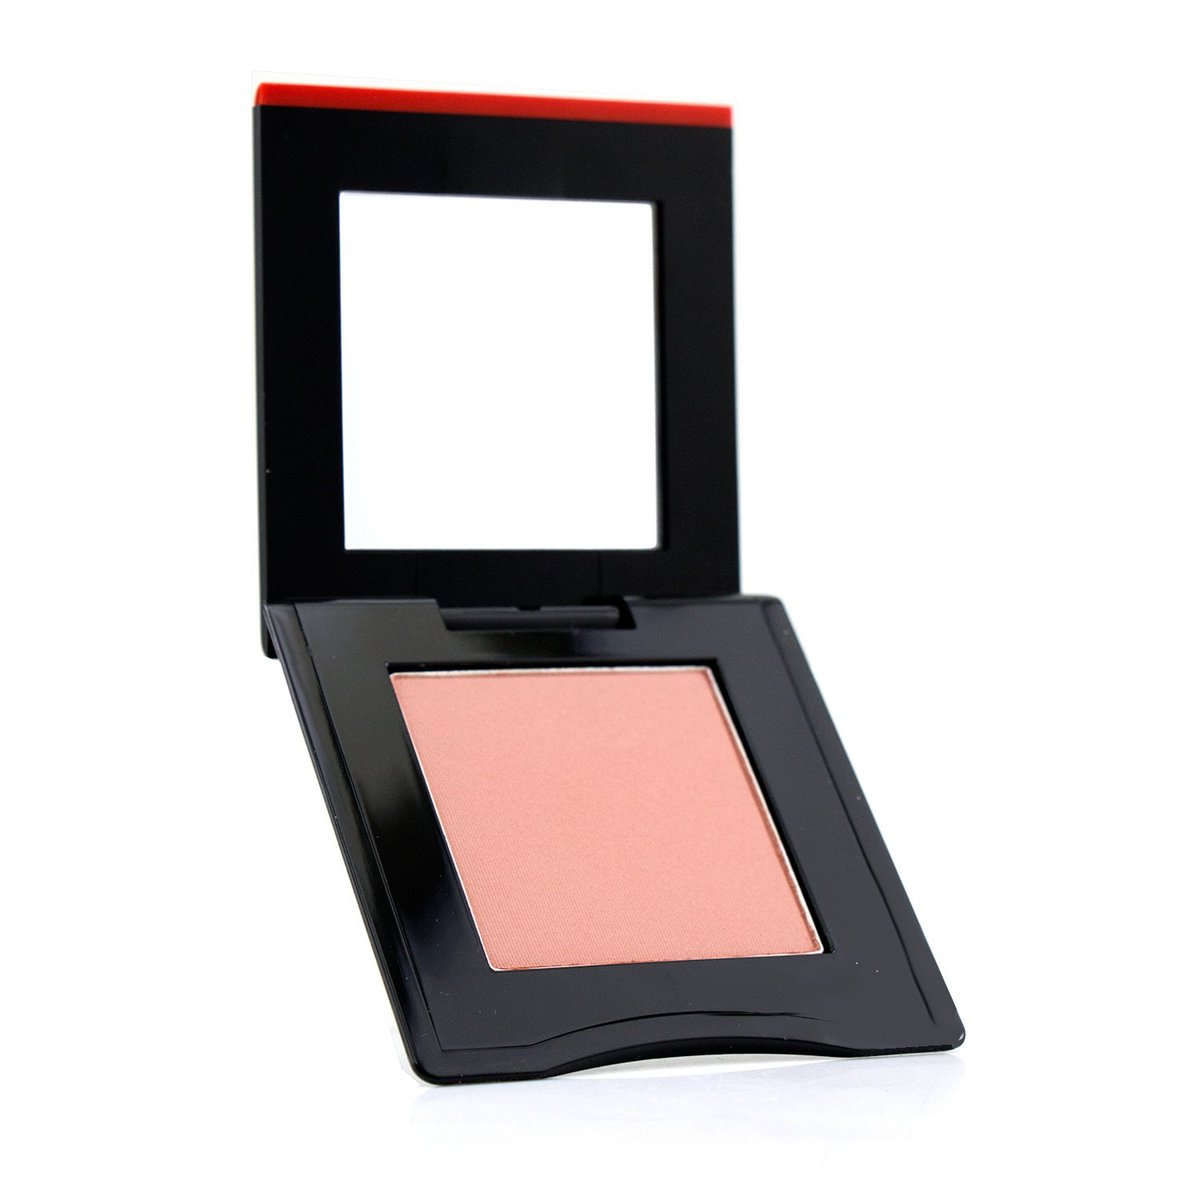 InnerGlow CheekPowder - # 06 Alpen Glow (Soft Peach) [平行進口產品]